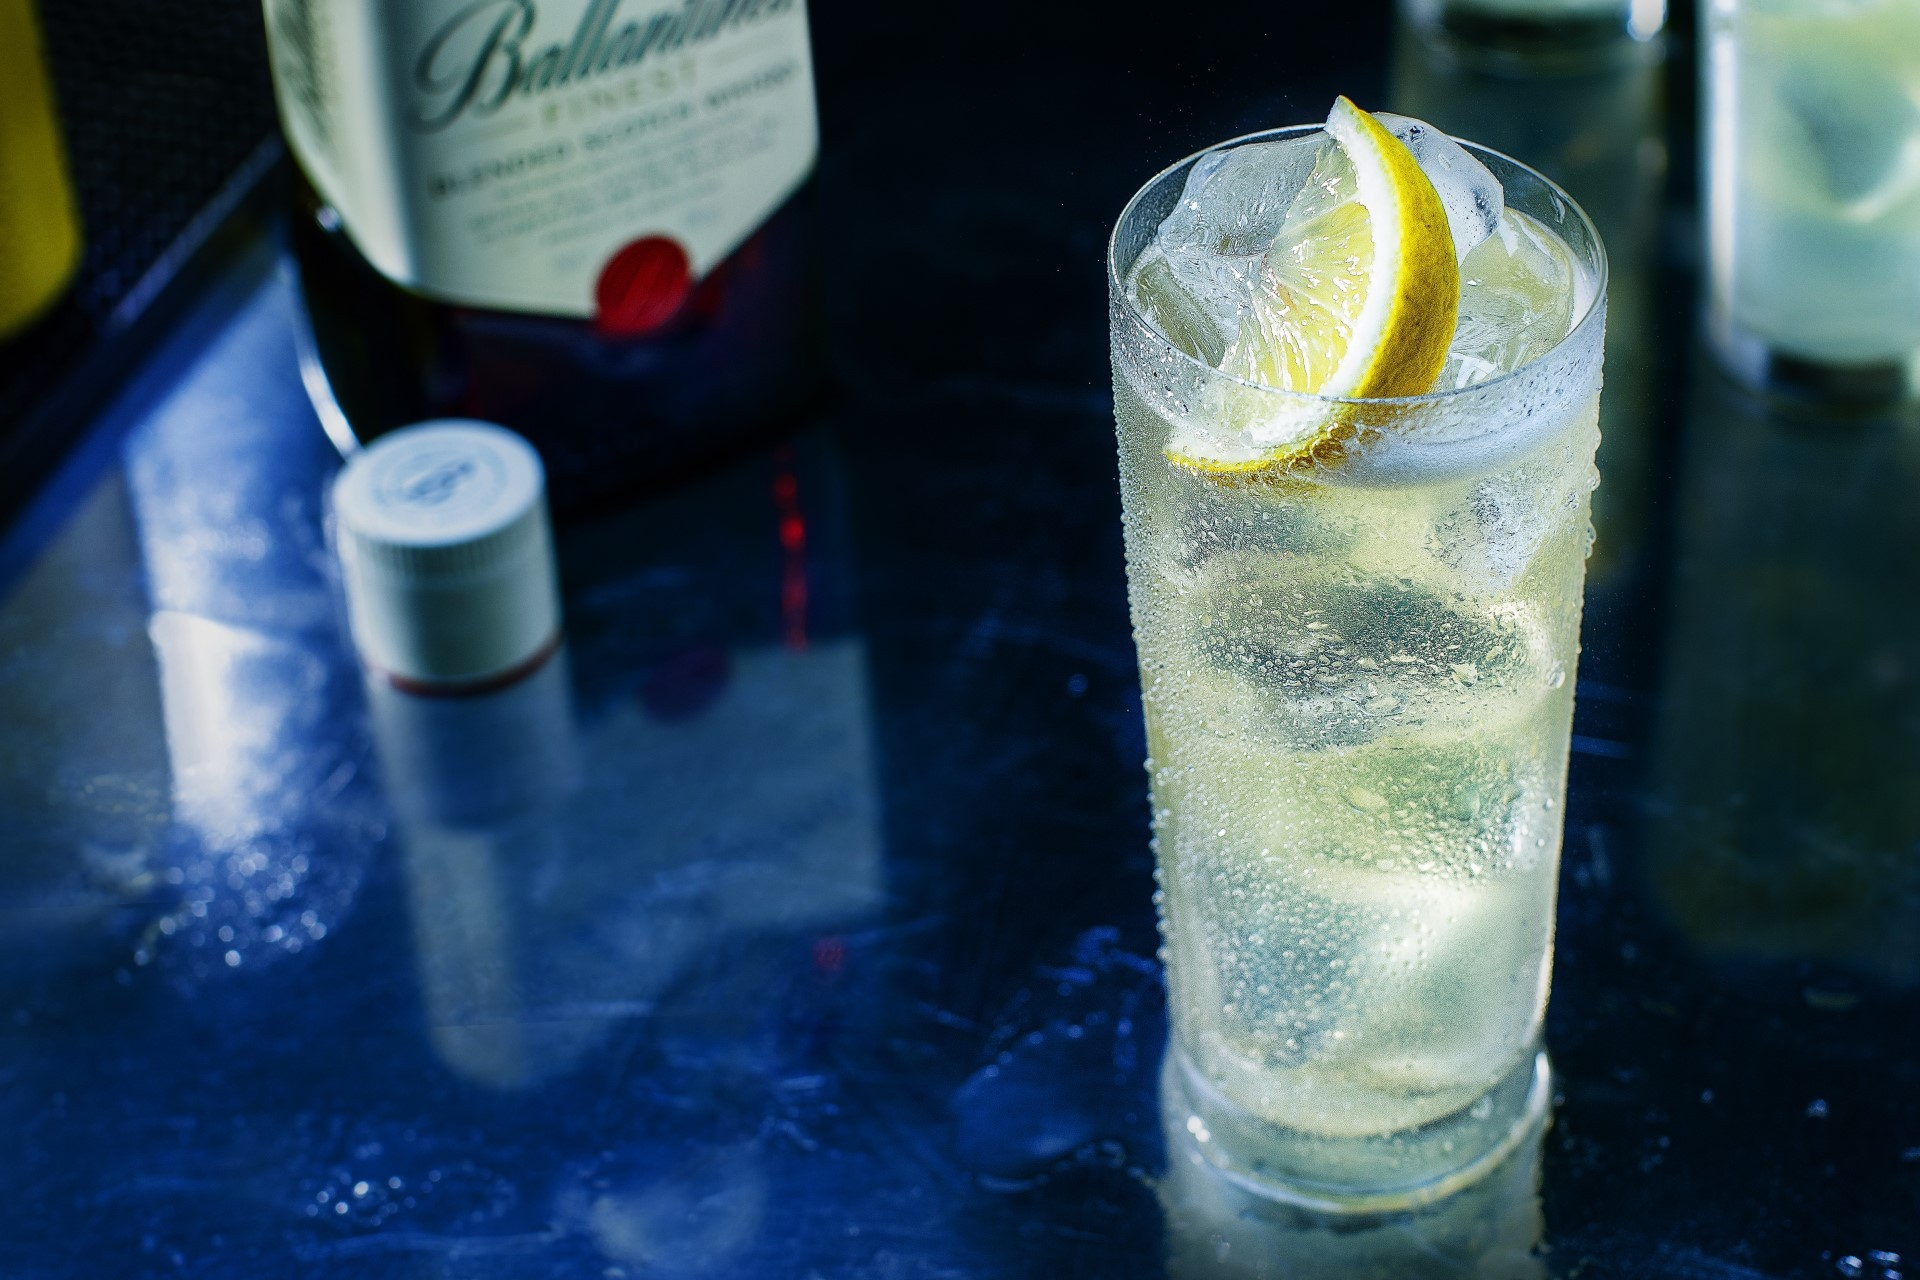 Ballantine's Finest Lemon Soda Drink